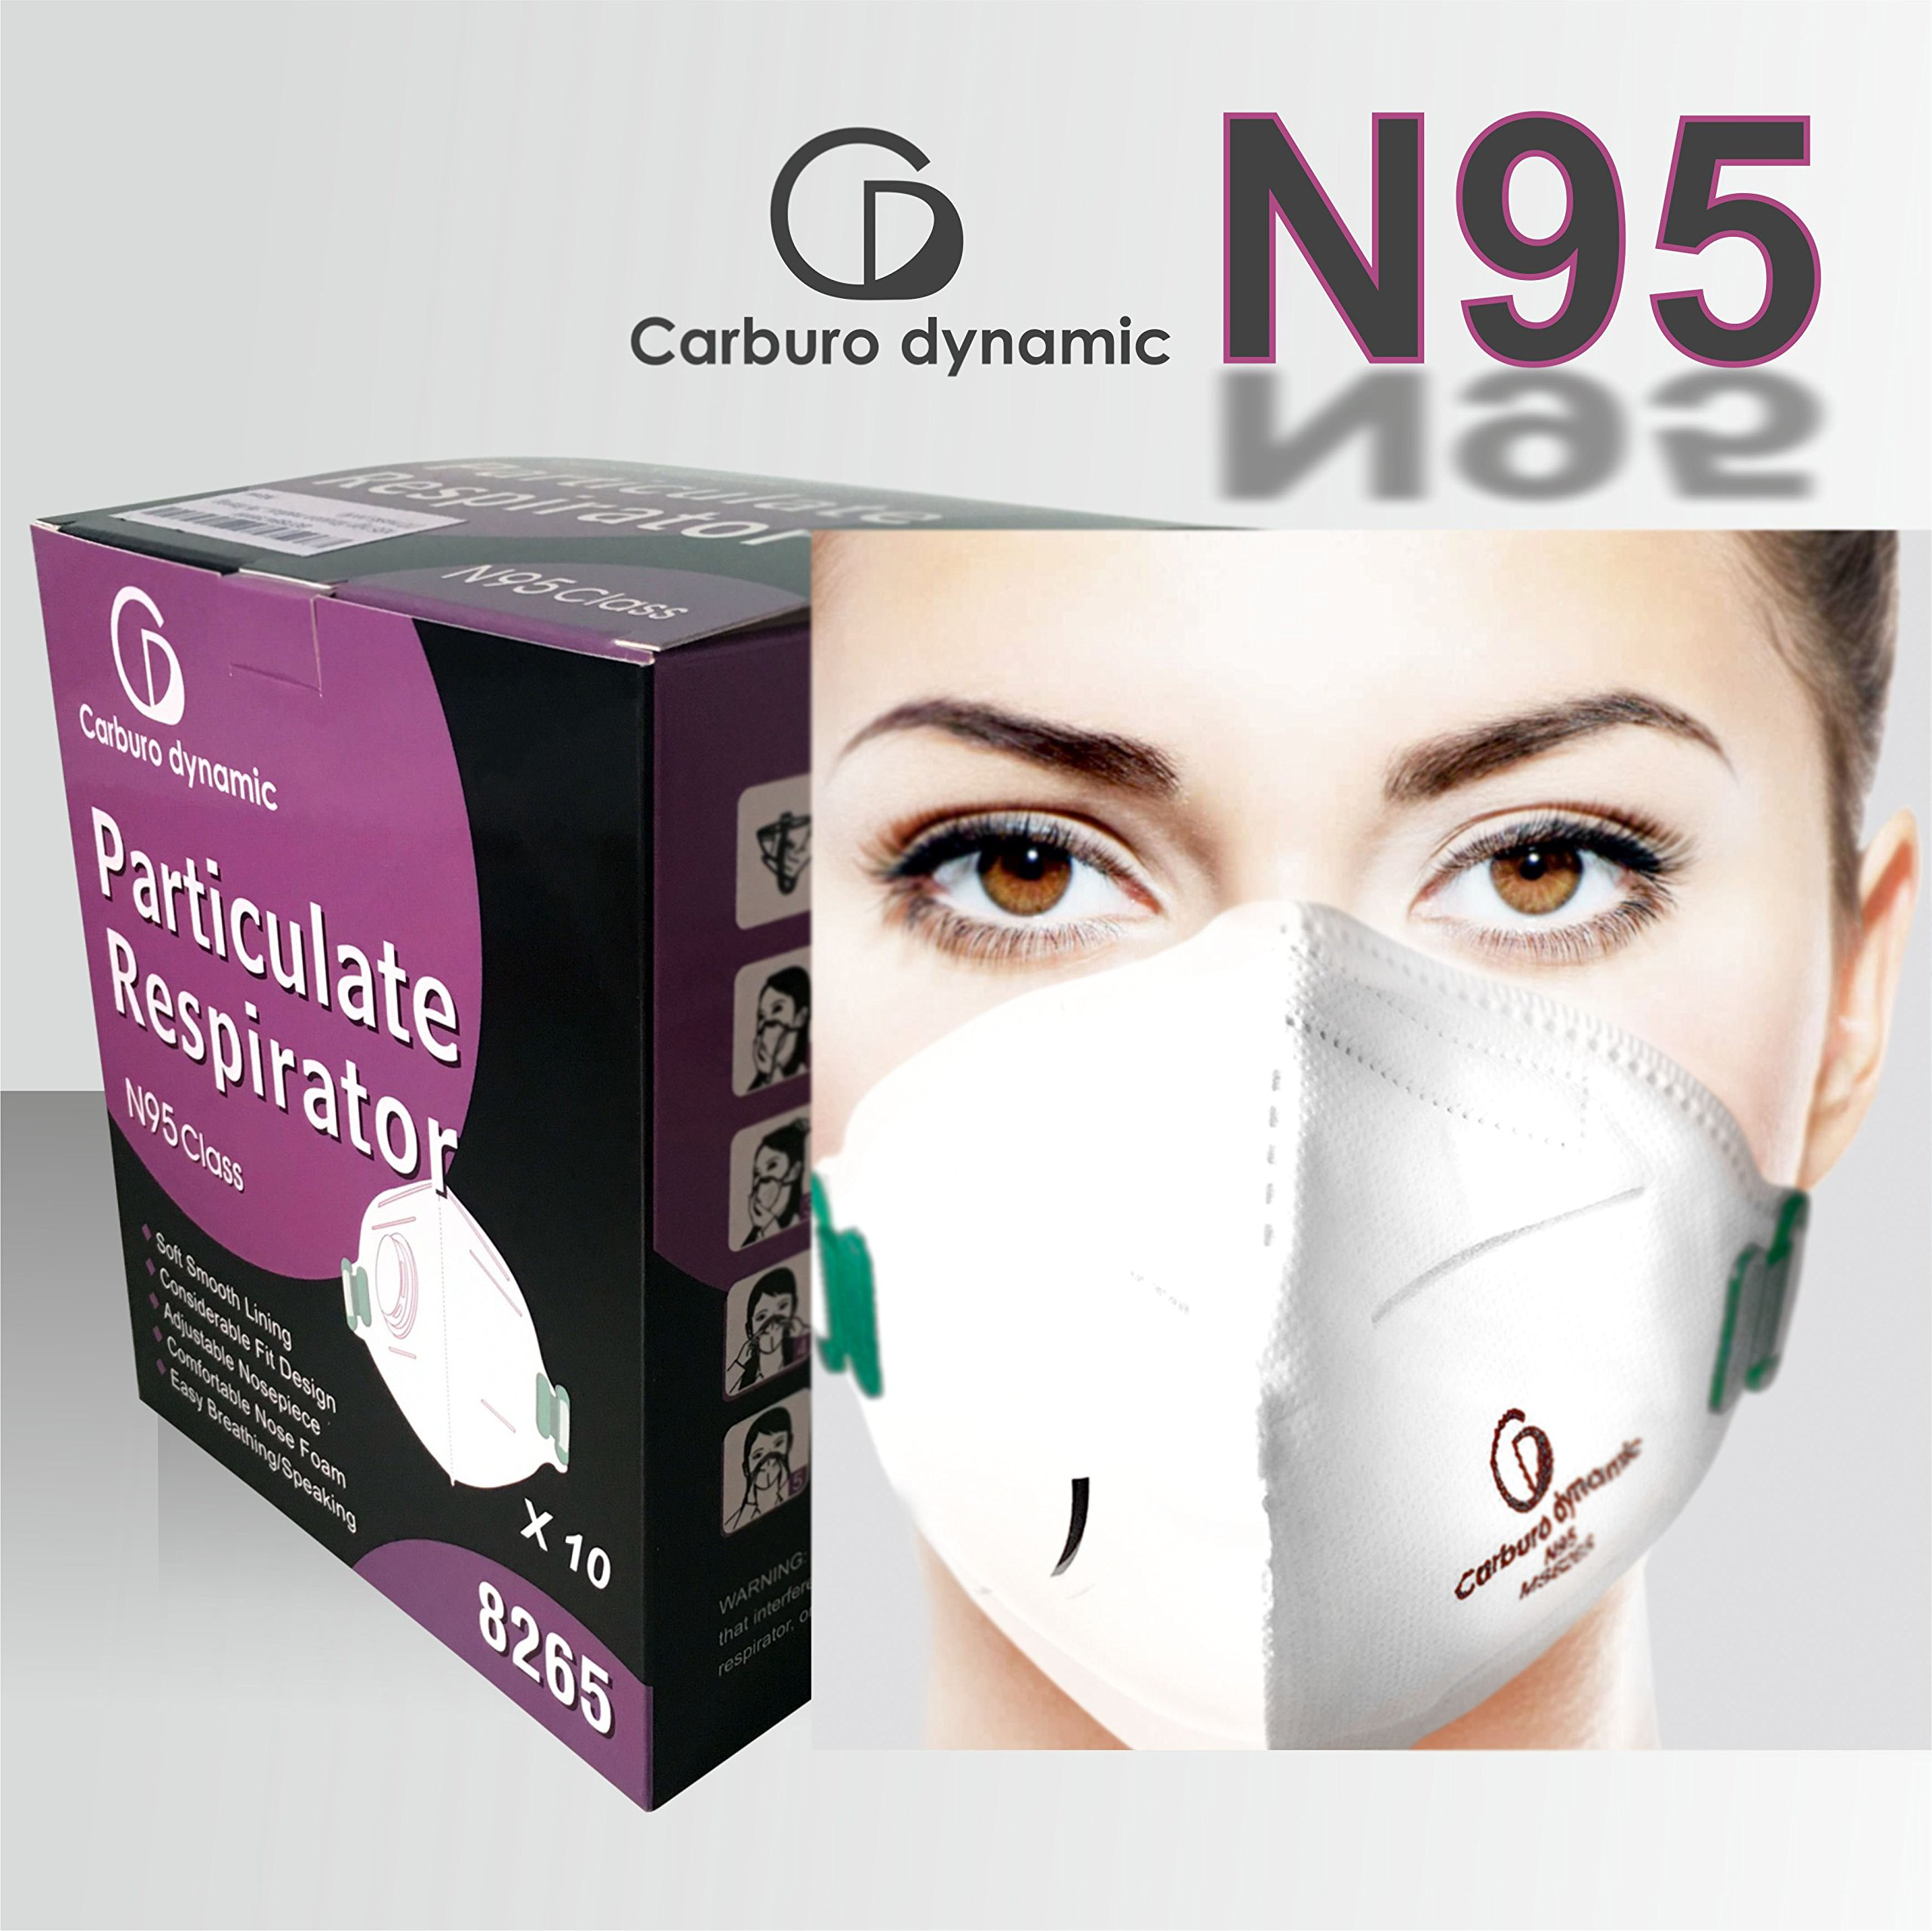 Dust mask, medical, construction, Particulate Respirator, Respiratory Protection, Anti Pollution, N95 high filtration, with valve >95% filtering (10 masks pack)